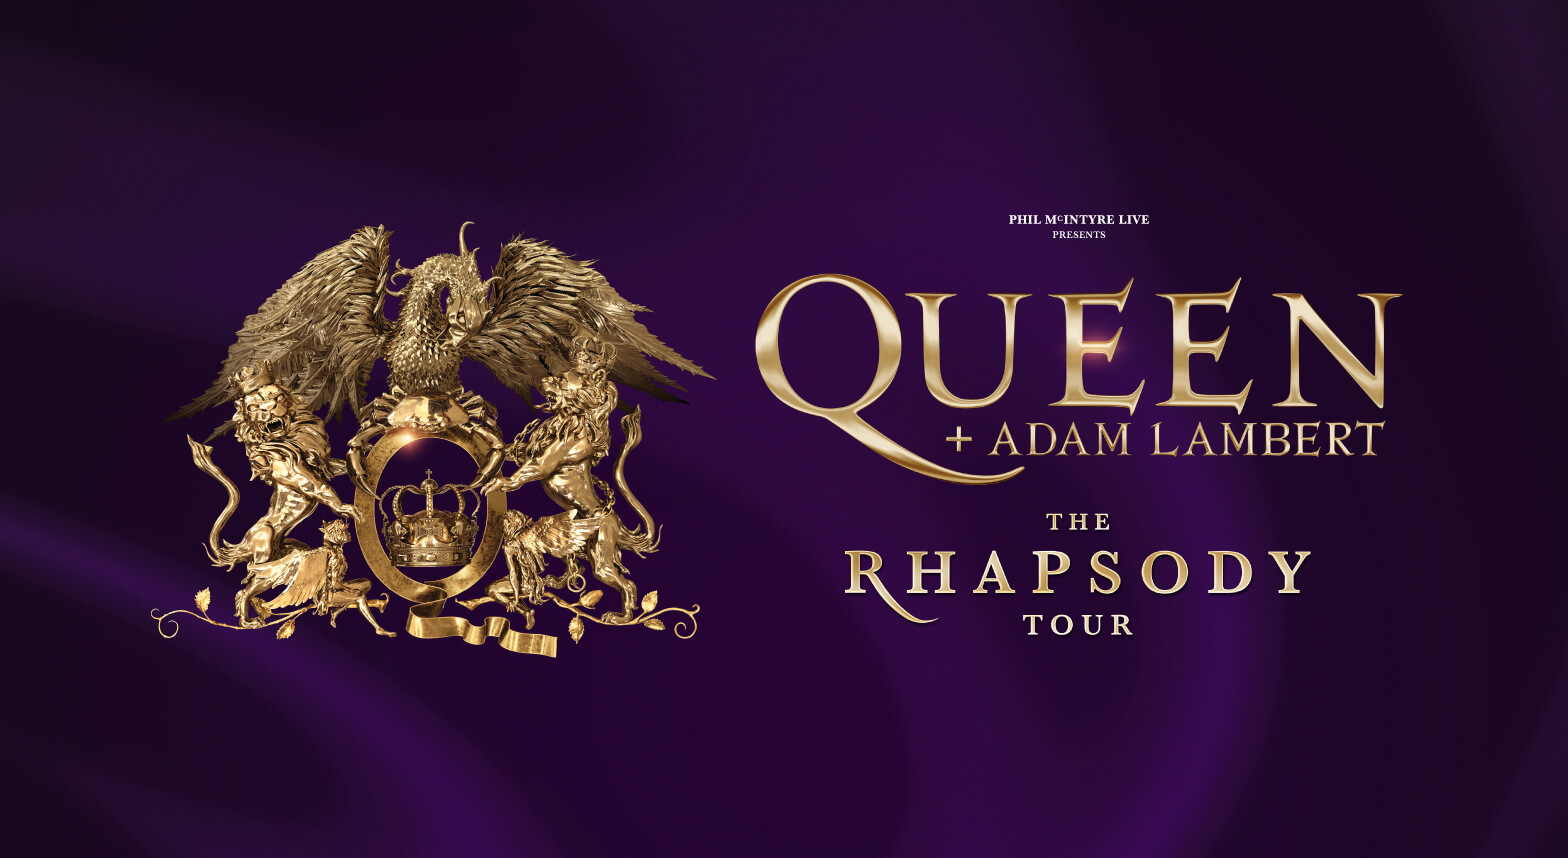 Queen with Adam Lambert at the Birmingham Arena